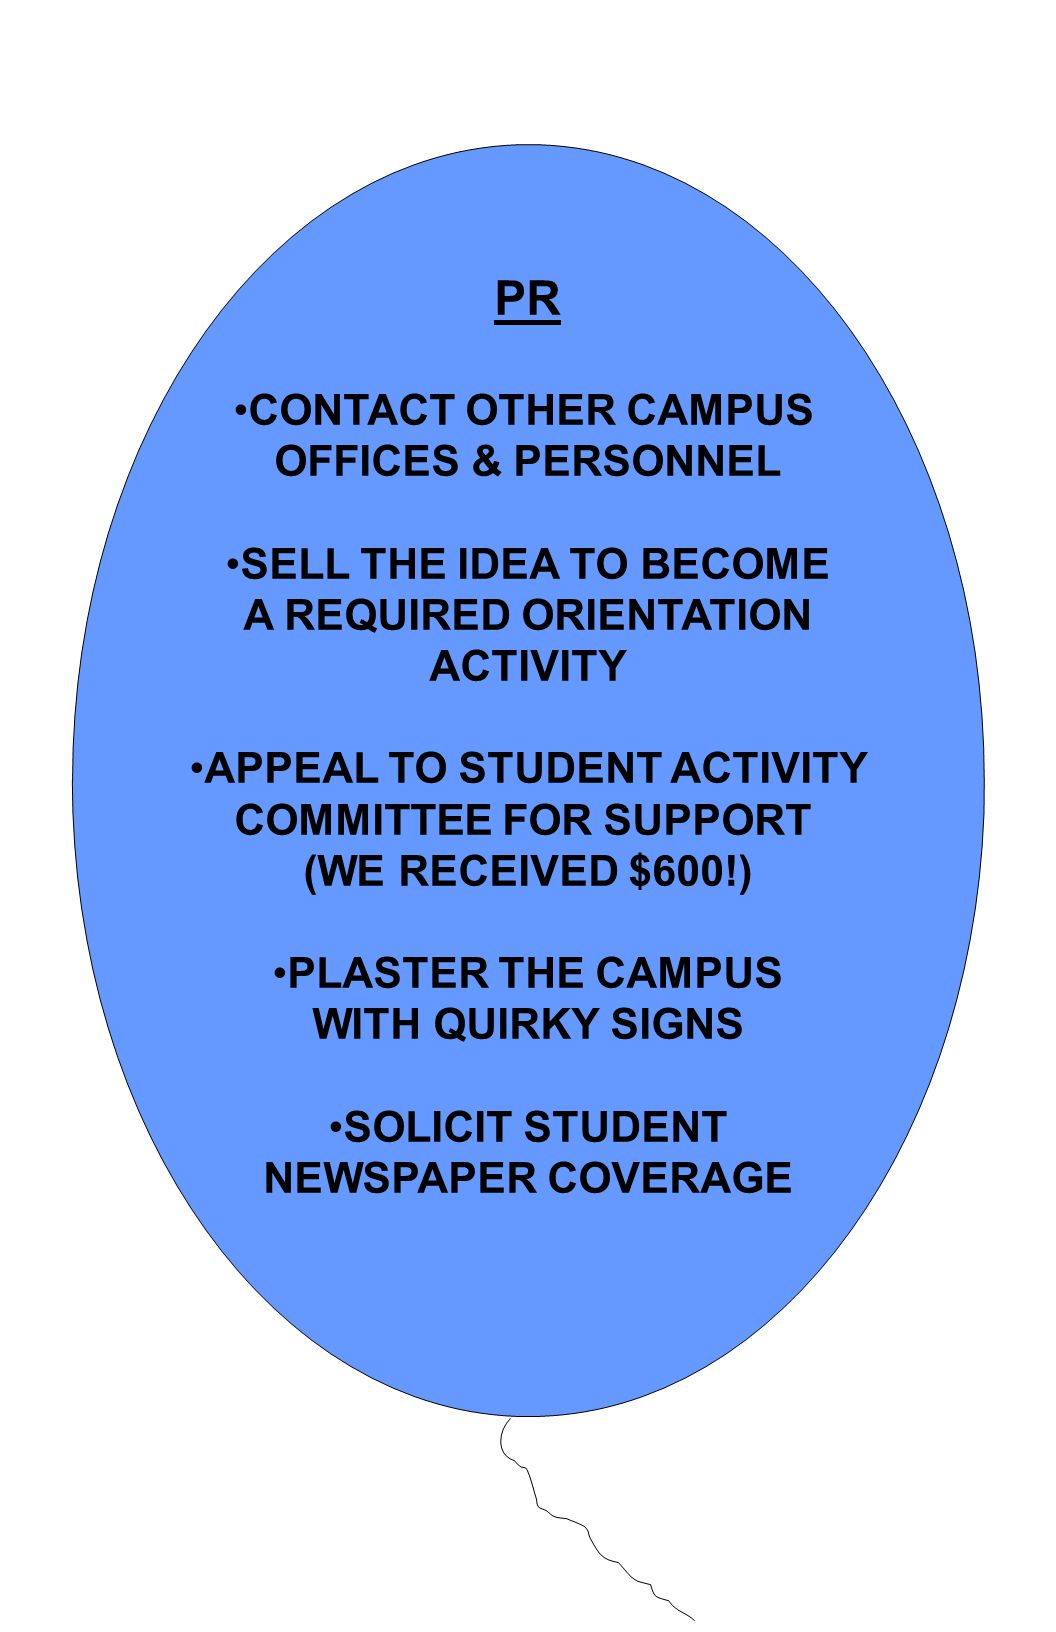 PR CONTACT OTHER CAMPUS OFFICES & PERSONNEL SELL THE IDEA TO BECOME A REQUIRED ORIENTATION ACTIVITY APPEAL TO STUDENT ACTIVITY COMMITTEE FOR SUPPORT (WE RECEIVED $600!) PLASTER THE CAMPUS WITH QUIRKY SIGNS SOLICIT STUDENT NEWSPAPER COVERAGE